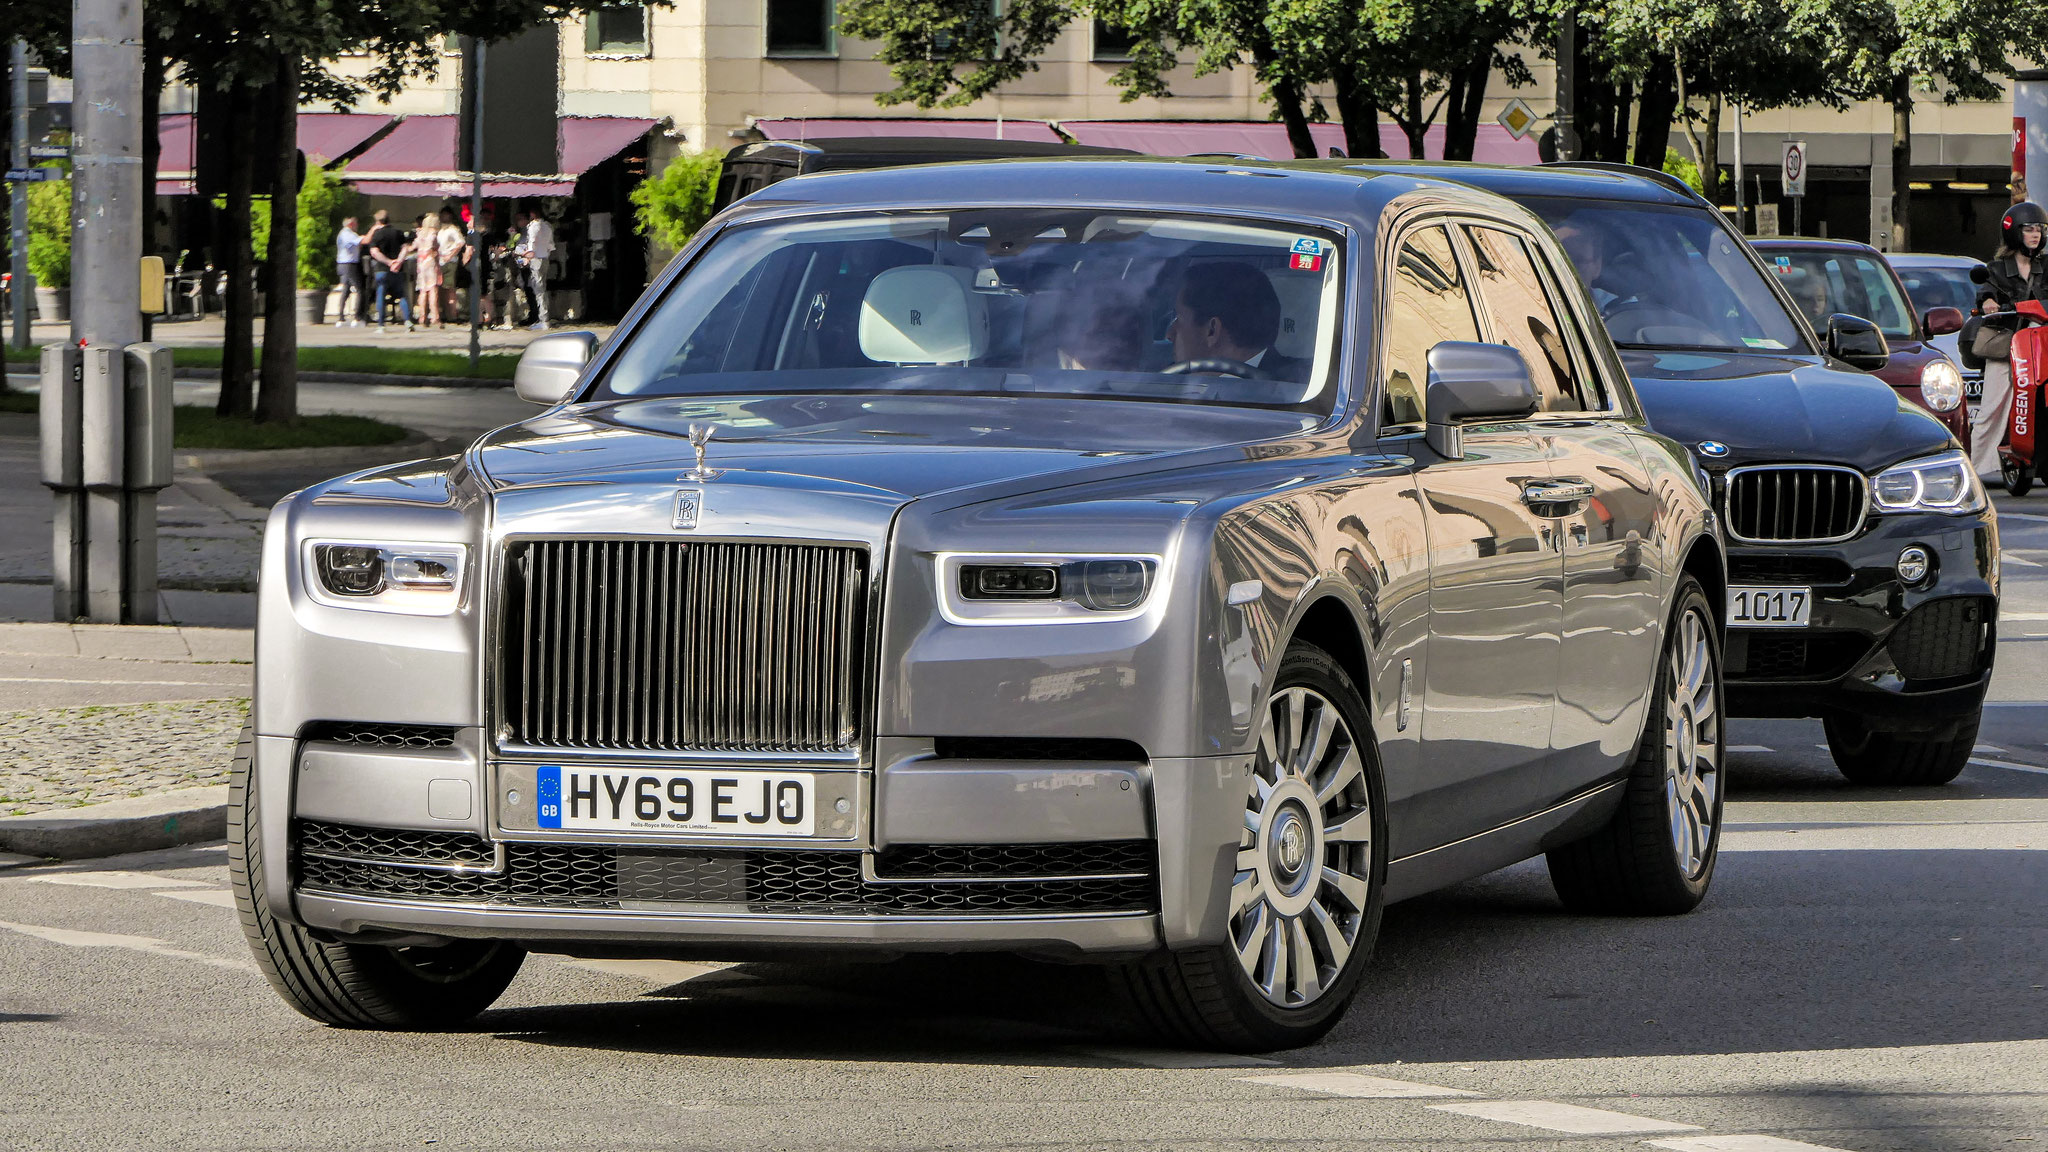 Rolls Royce Phantom - HY69-EJO (GB)